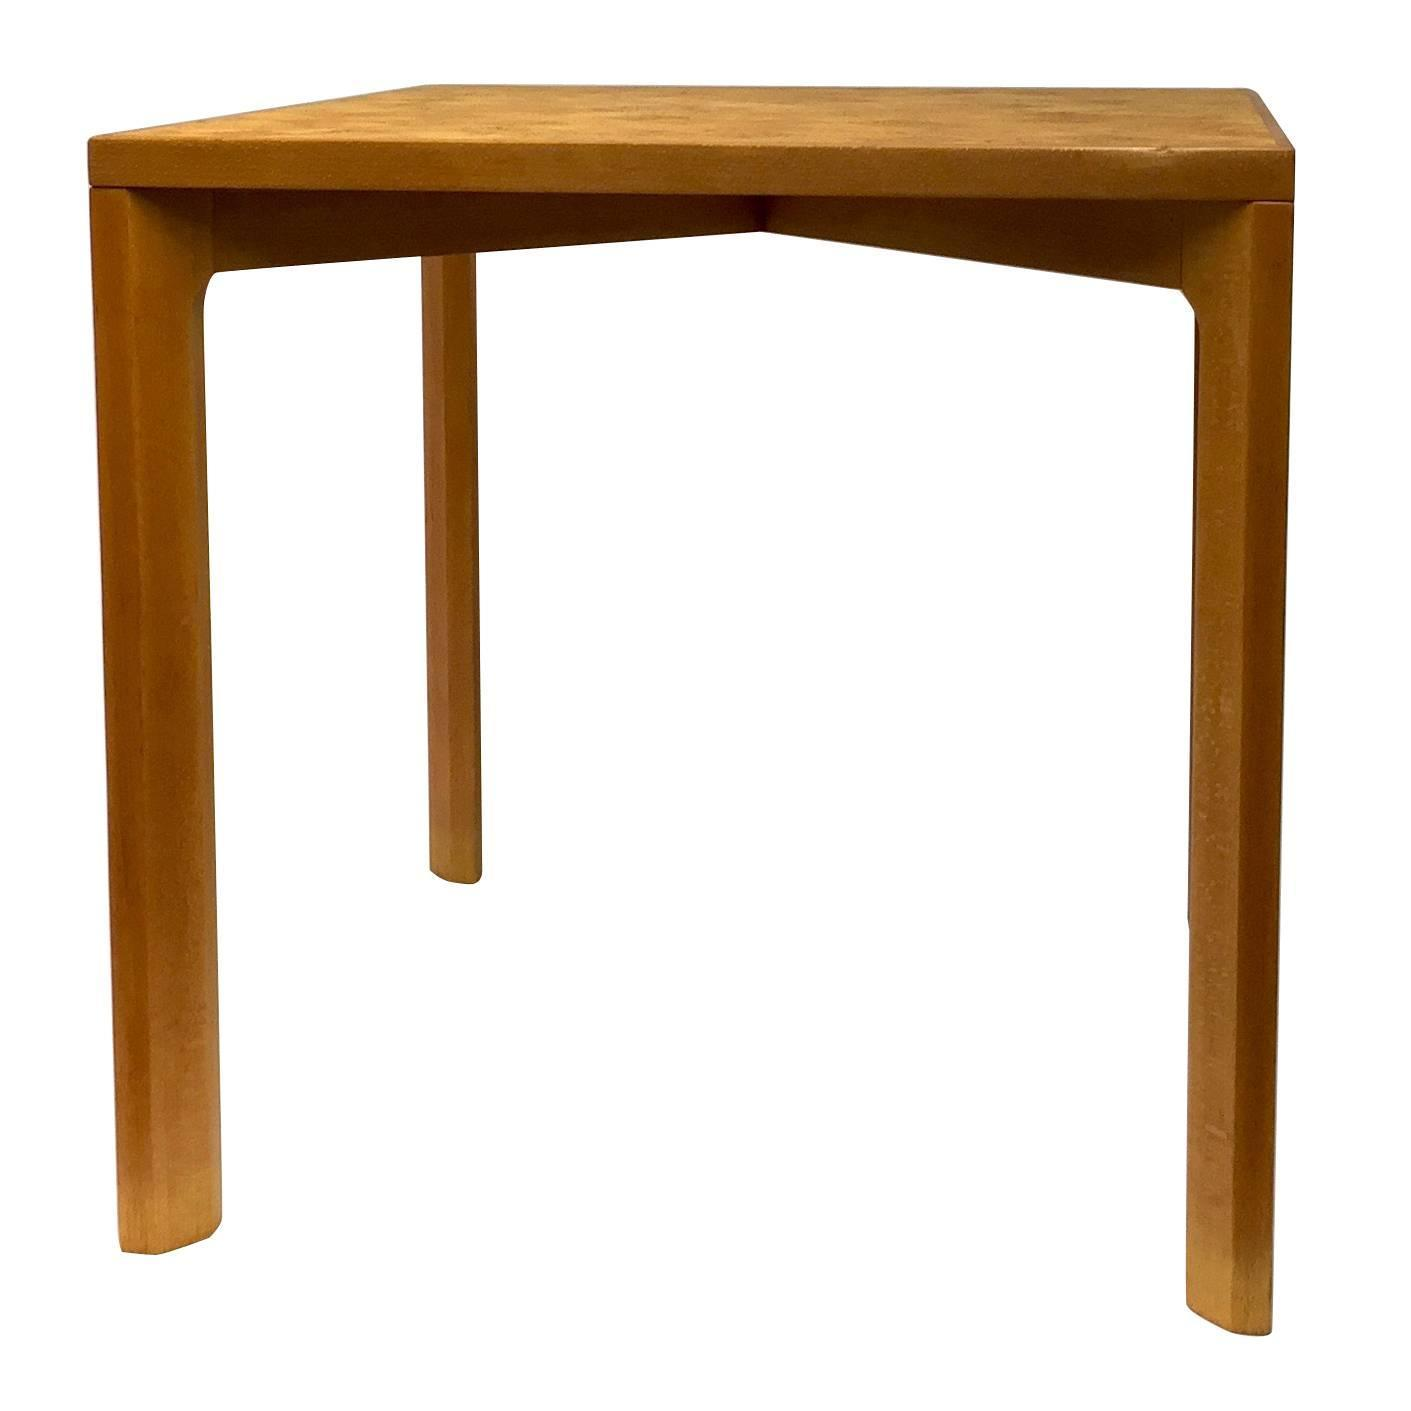 cork dining room tables - 8 for sale at 1stdibs